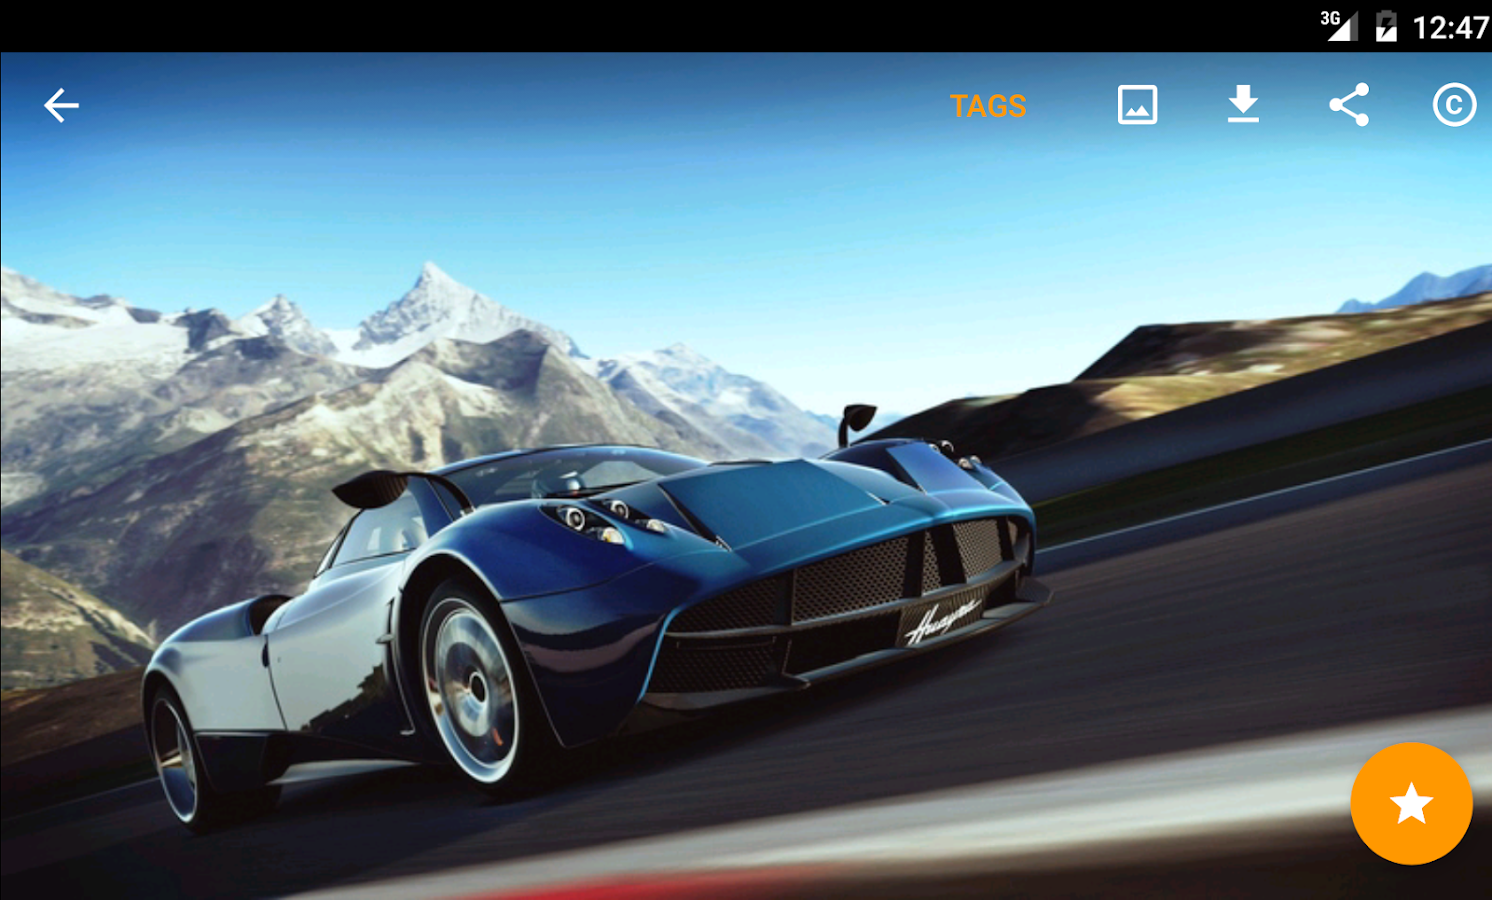 Car wallpapers- screenshot